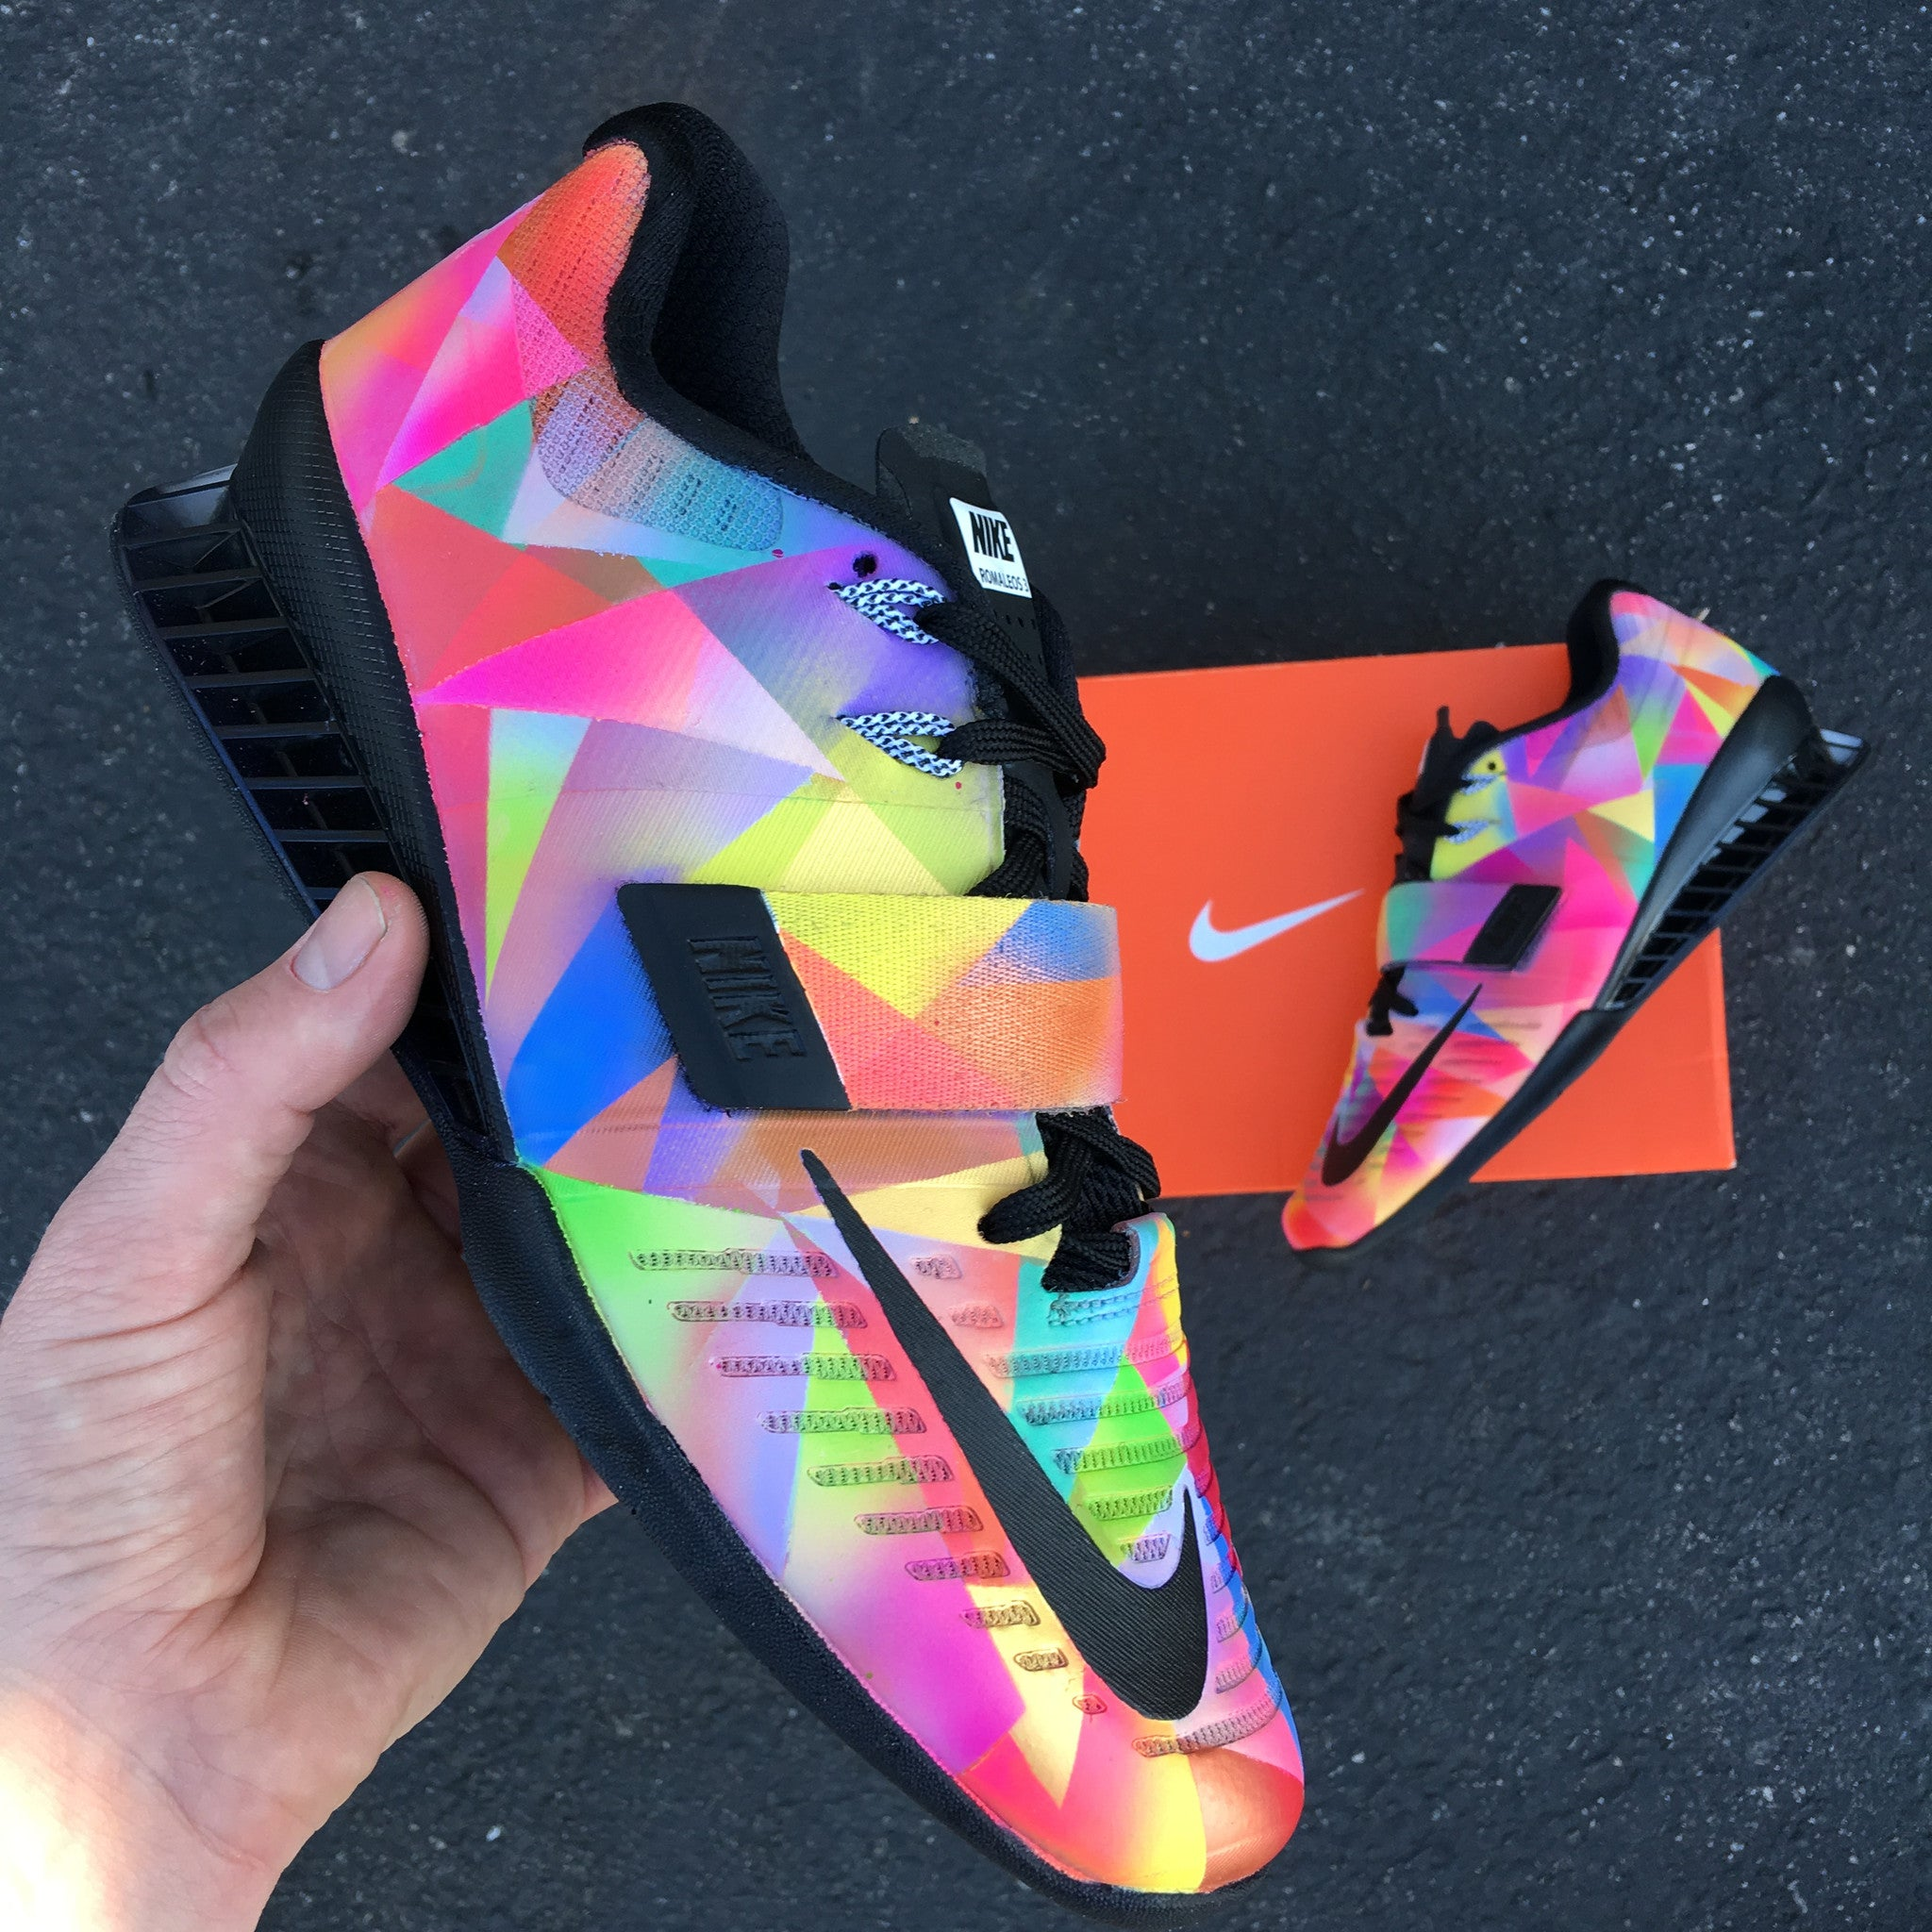 Nike Romaleos 3 Prism Custom Painted Weightlifting Shoes